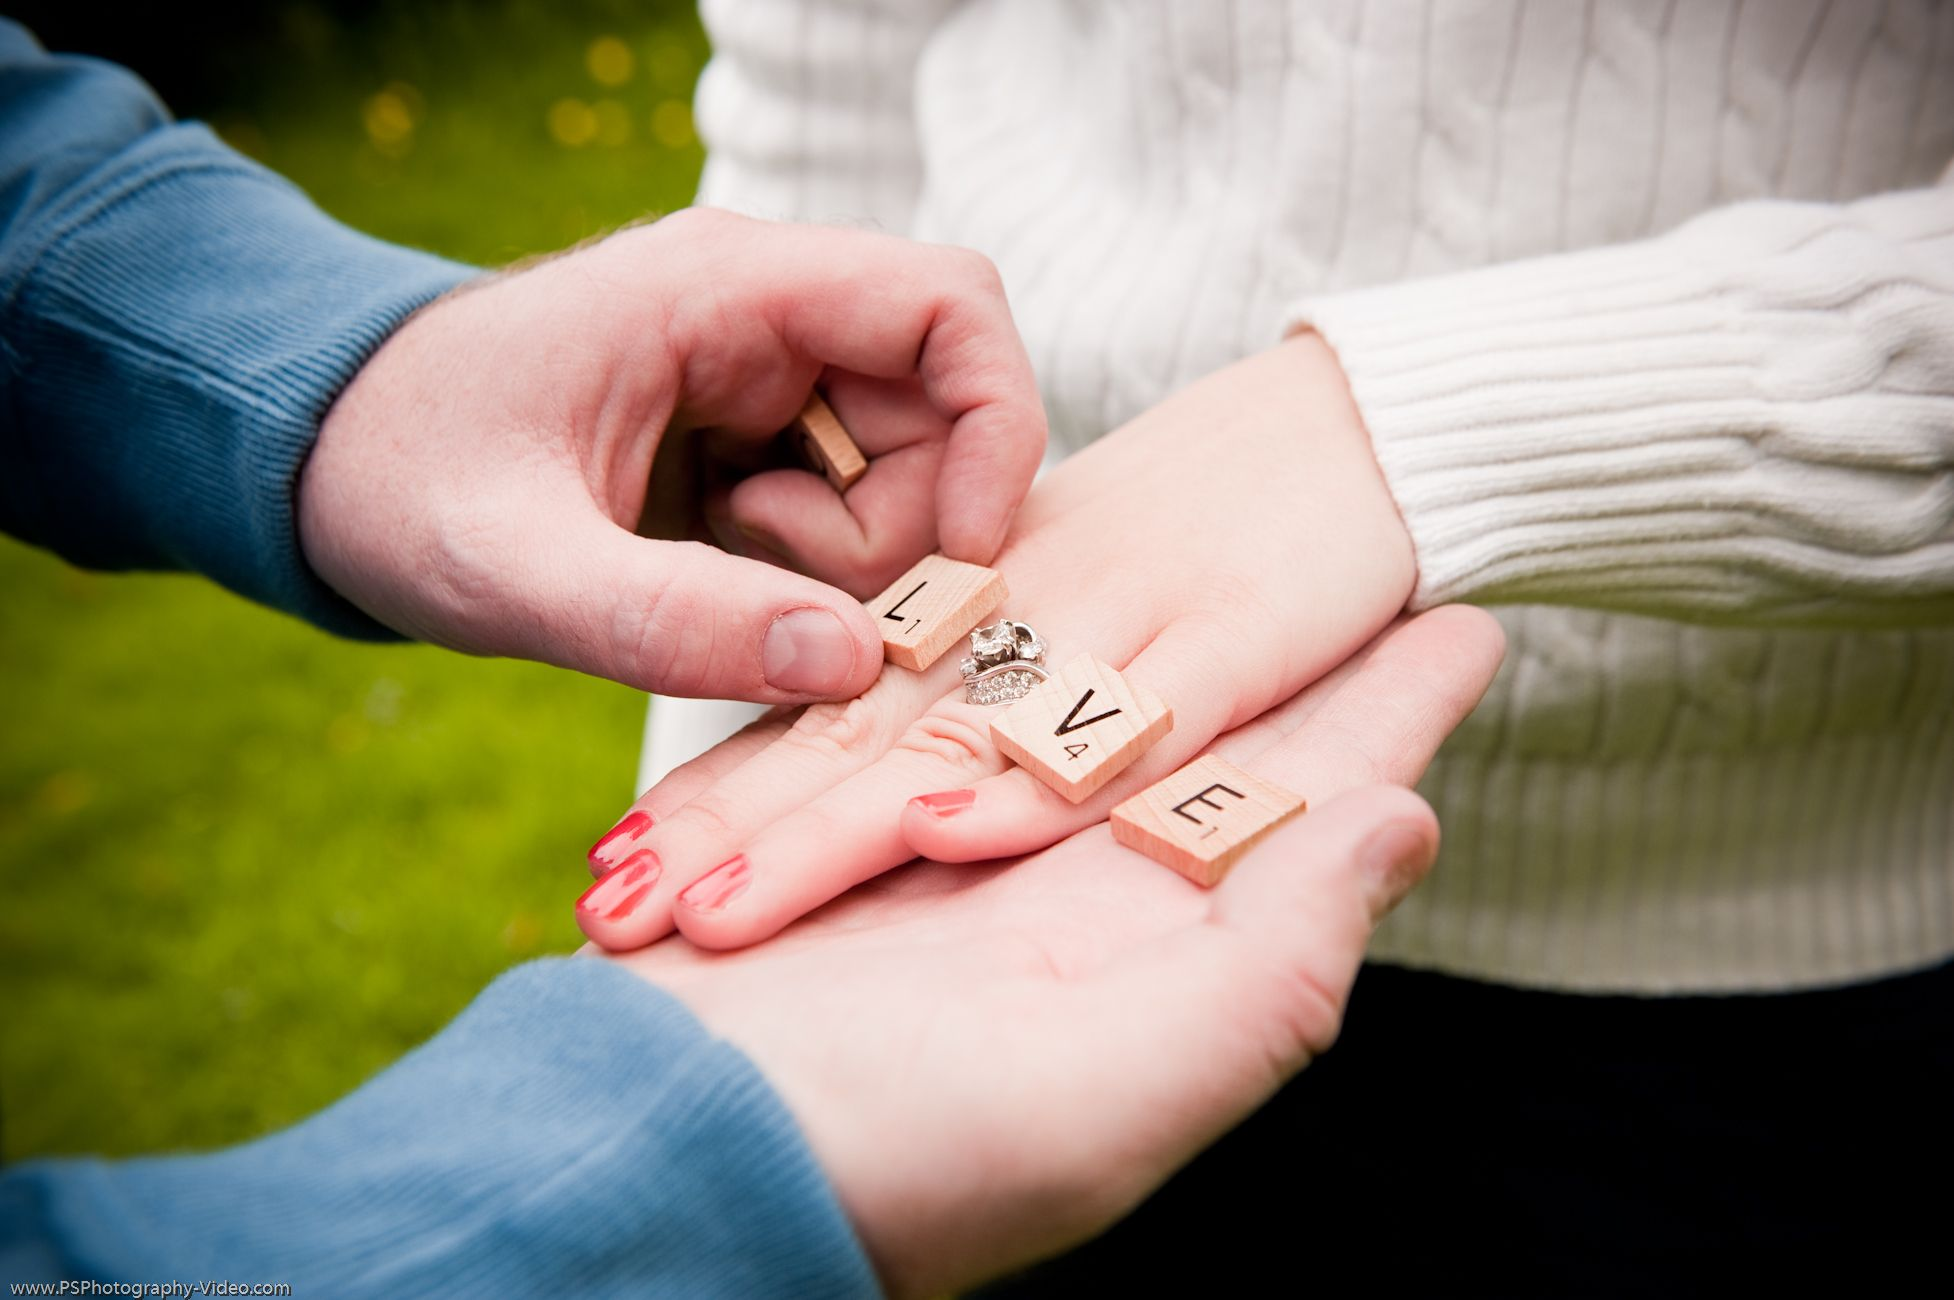 LOVE scrabble letters on hand for engagement photo, using the ring ...